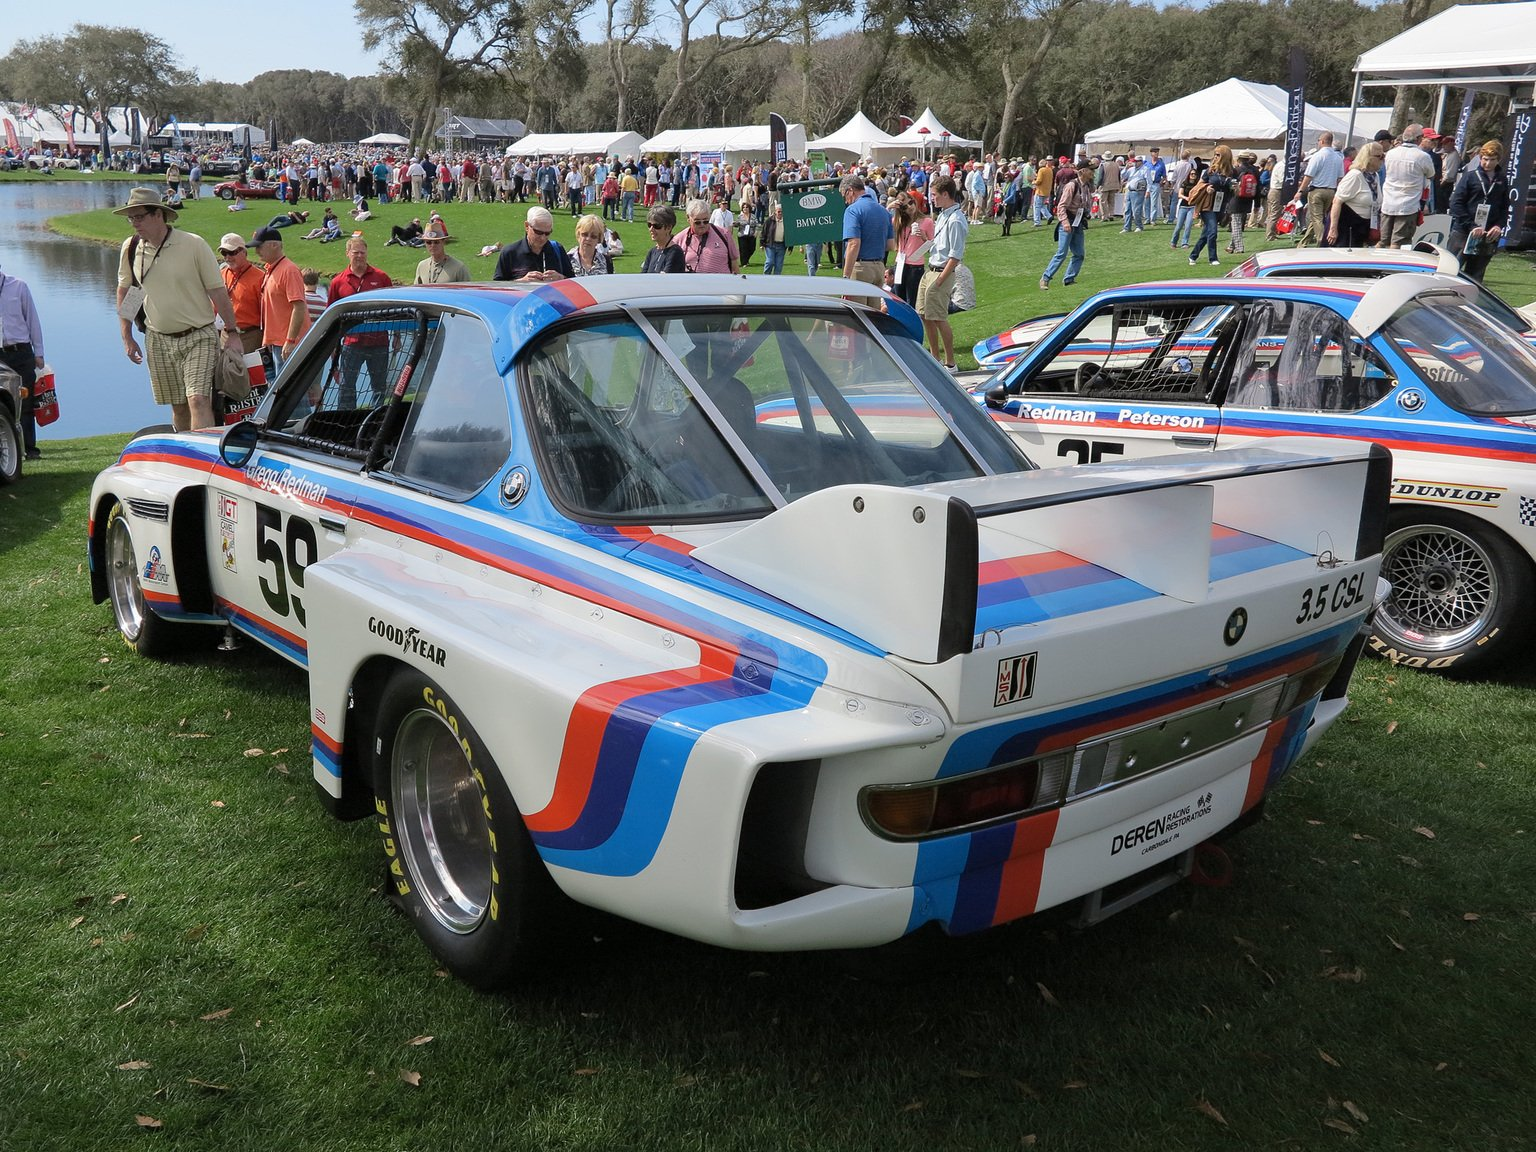 imsa 1975 bmw 3 5 csl group 4 germany race racing car vehicle classic retro sport supercar. Black Bedroom Furniture Sets. Home Design Ideas